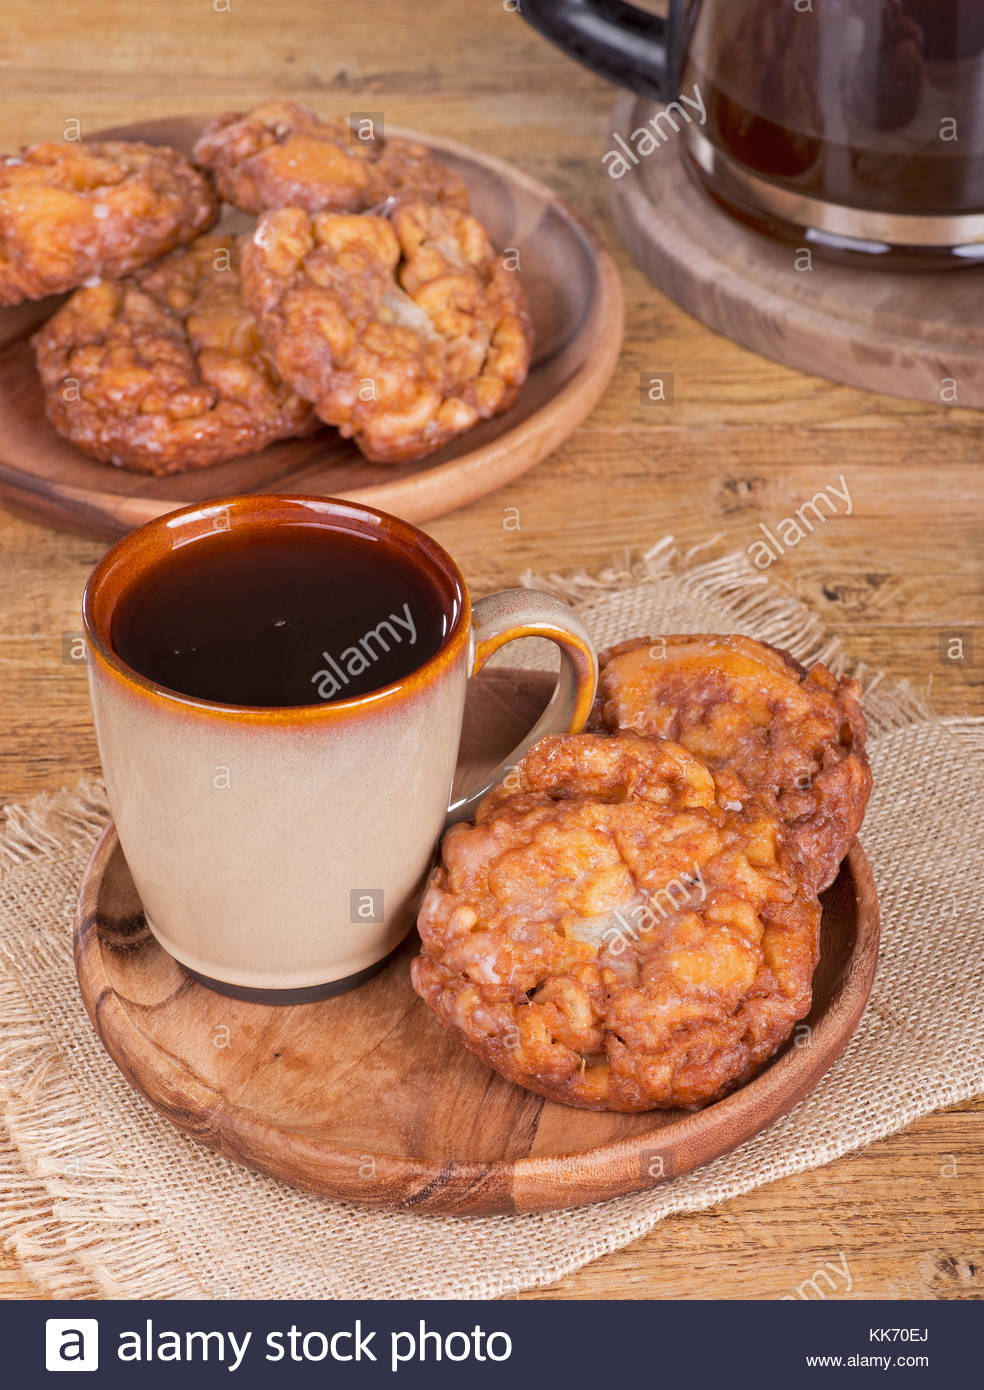 Name:  glazed-apple-fritters-and-cup-of-coffee-on-a-wooden-plate-KK70EJ.jpg